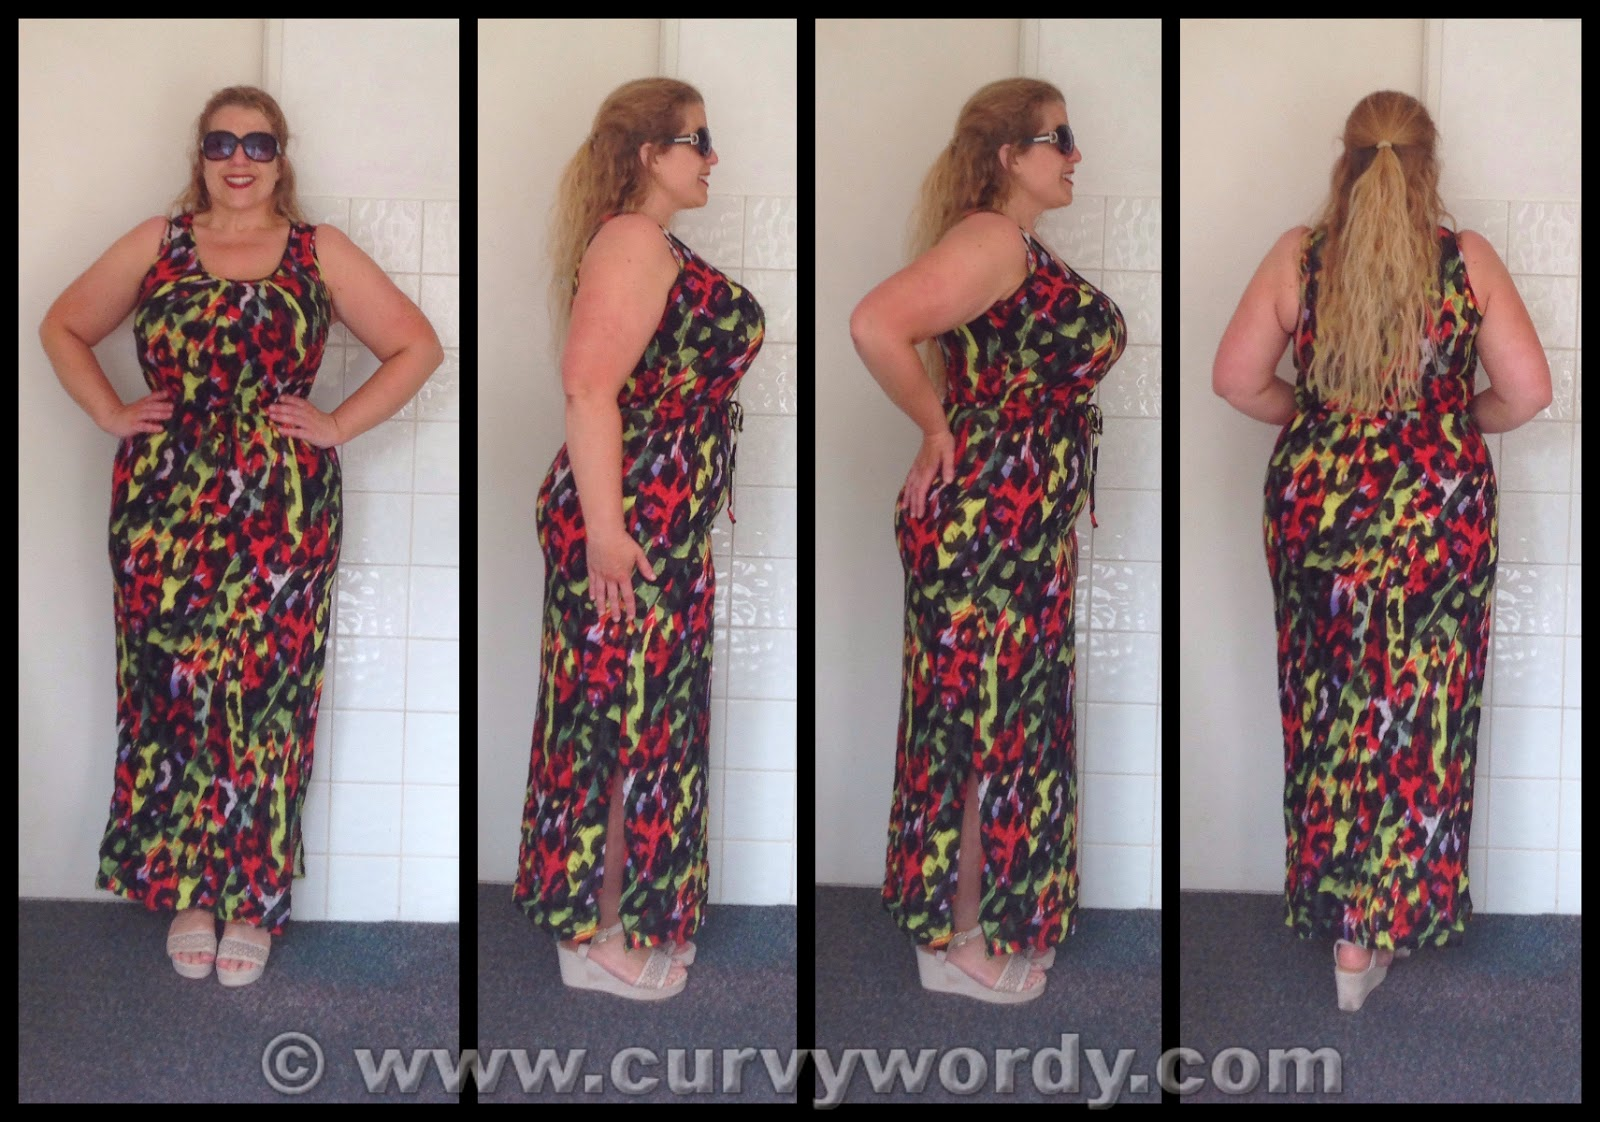 20a0e8b3a I very rarely bare my legs so it came as a surprise to me when I found  myself adding the Animal Print Maxi Dress (£12.00, sizes 8-24) to my online  basket.